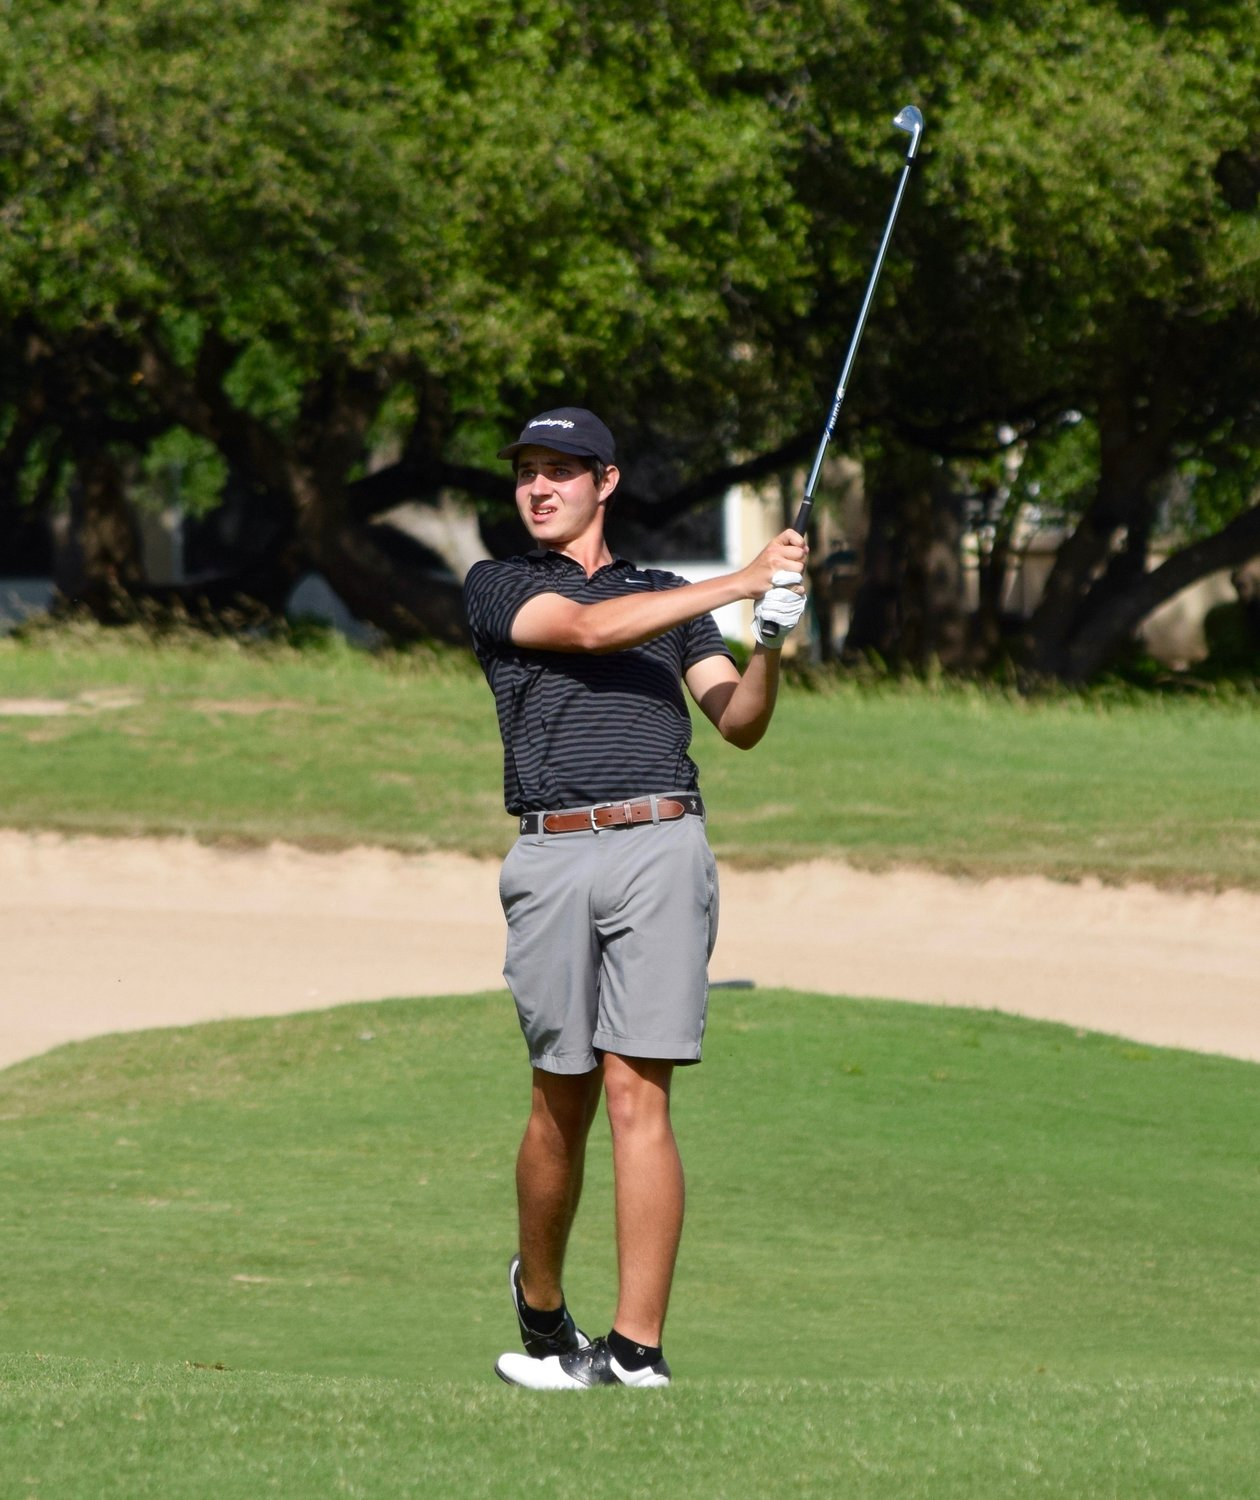 Cole Sherwood and Vandegrift finished second as a team at the state golf tournament in Georgetown. It's the second year in a row the Vipers won a silver medal at the tournament.